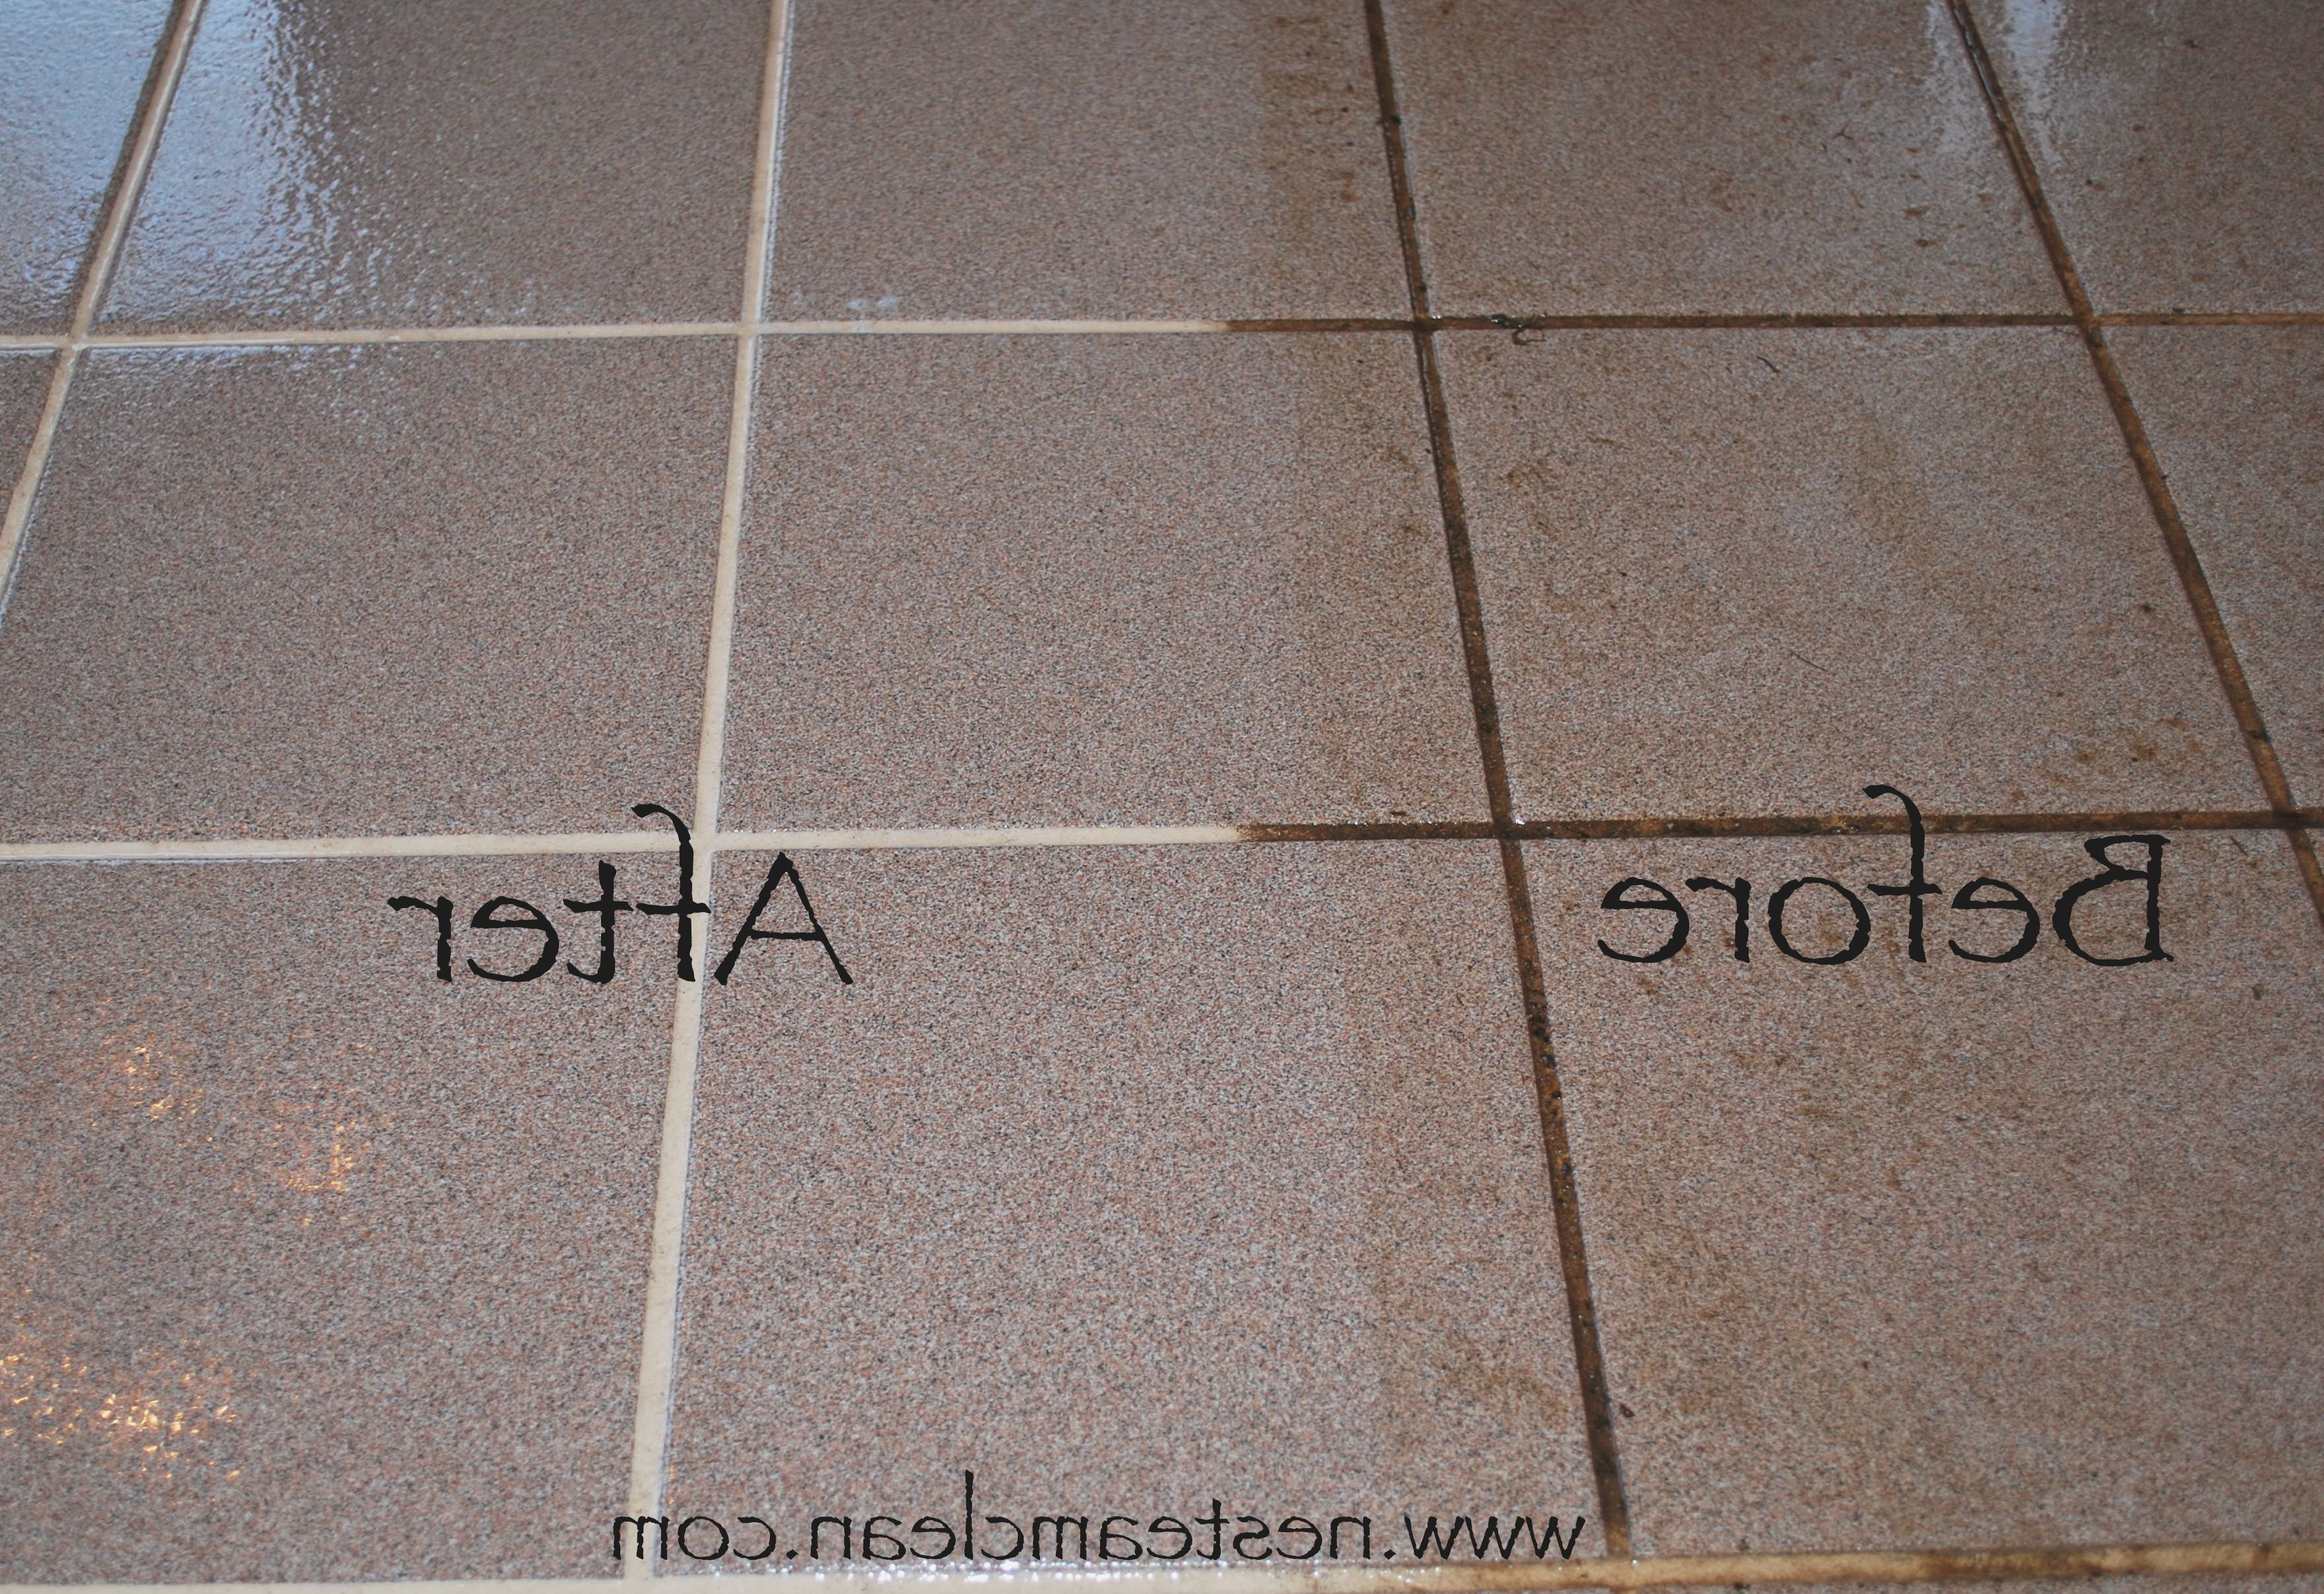 Fashionable design how to clean bathroom floor tile grout ceramic fashionable design how to clean bathroom floor tile grout ceramic dailygadgetfo Image collections